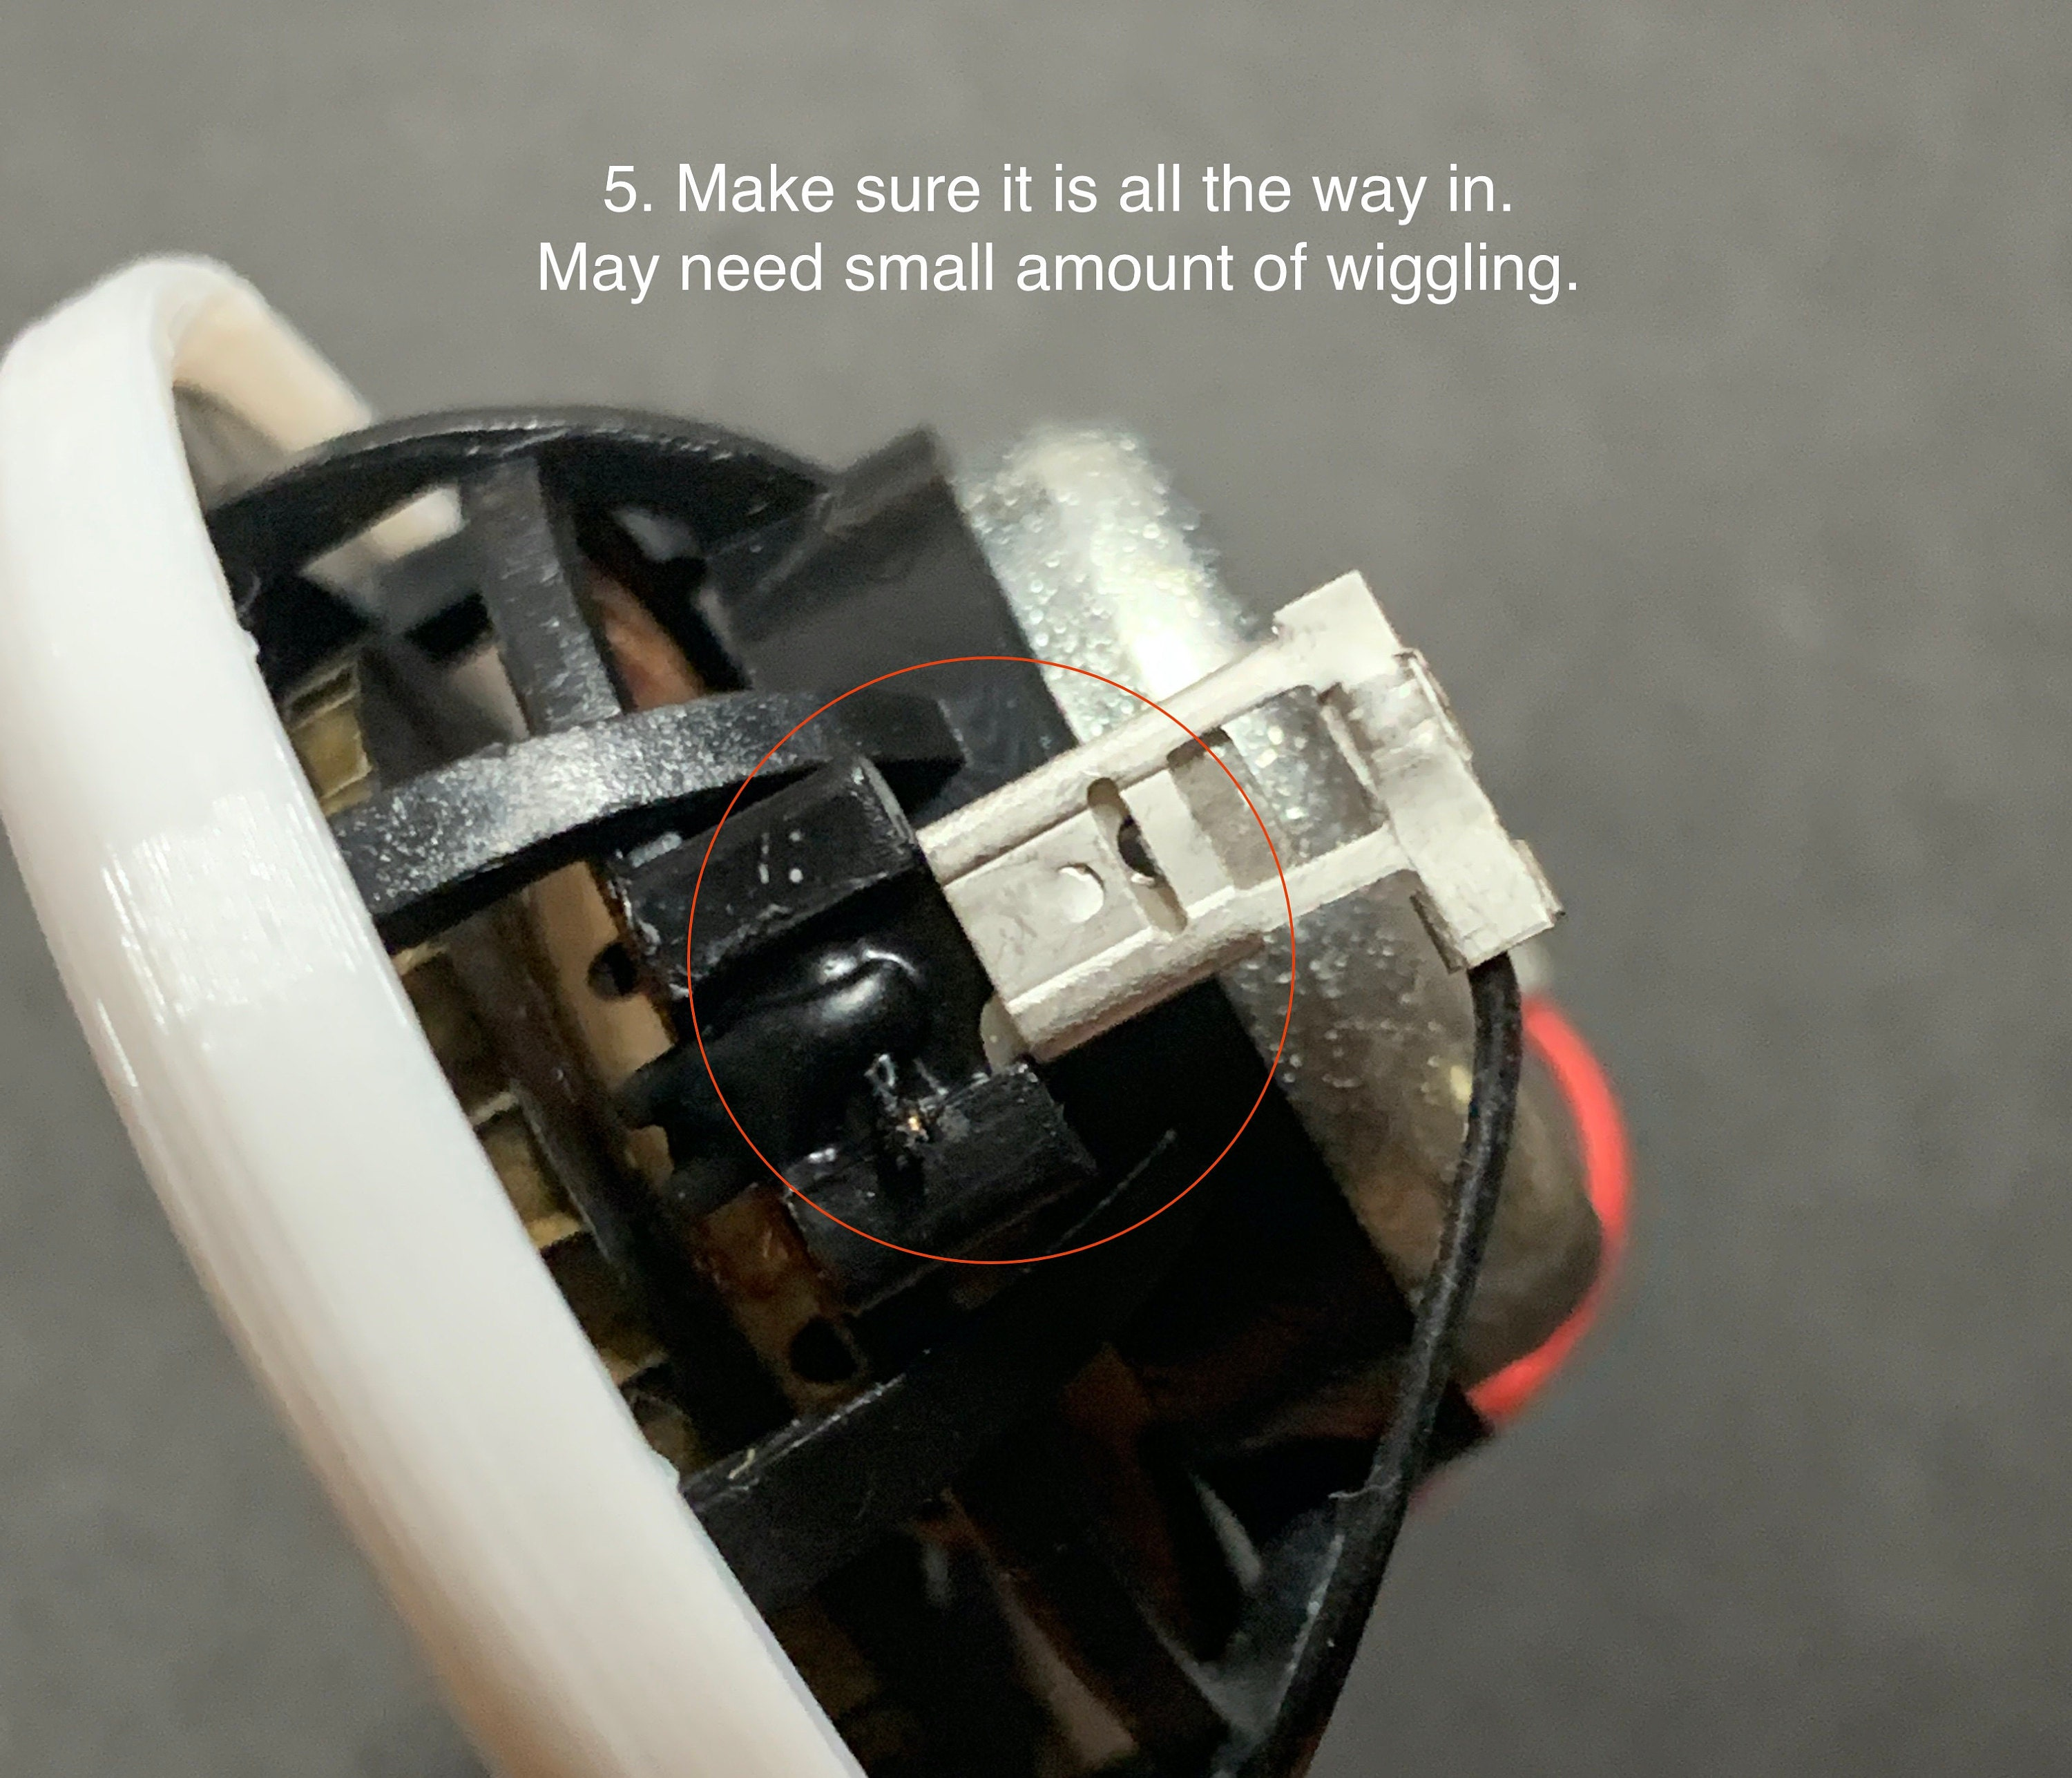 5. Make sure it is all the way in. May need small amount of wiggling.